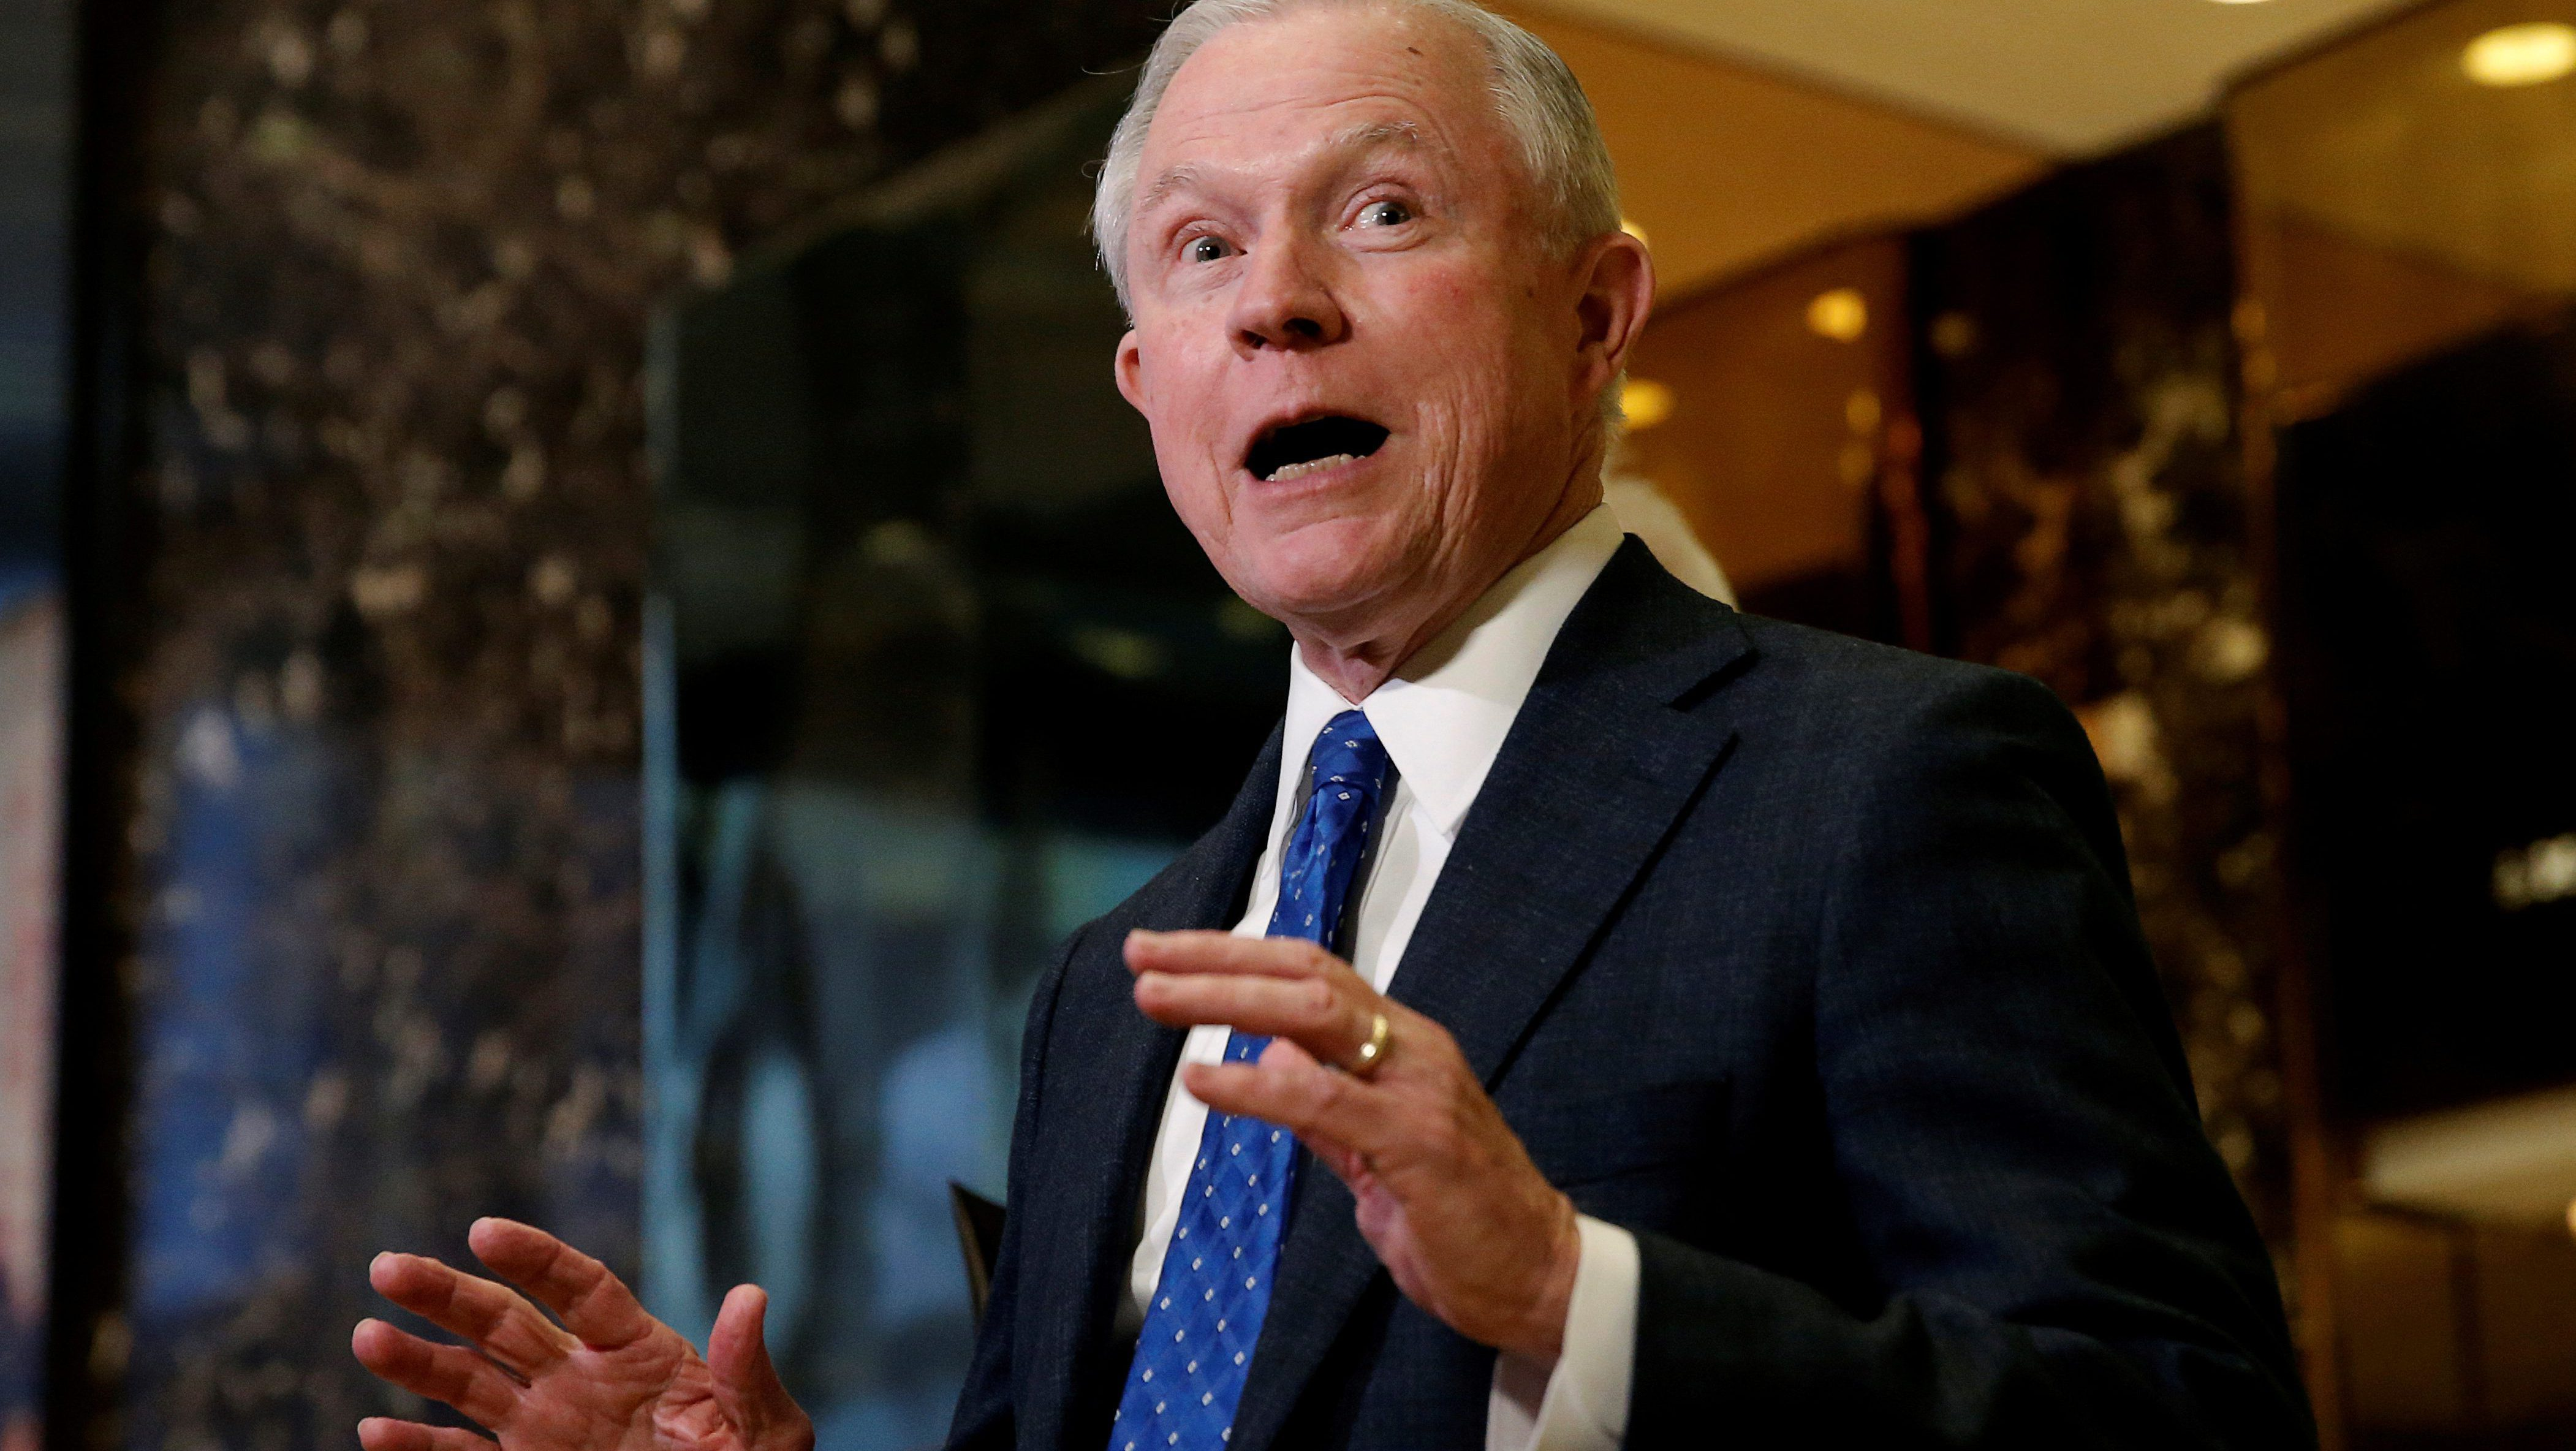 U.S. Senator Jeff Sessions (R-AL), an advisor to U.S. President Elect Donald Trump, speaks to members of the Media in the lobby of Trump Tower in the Manhattan borough of New York City, New York November 17, 2016. REUTERS/Mike Segar/File Photo TPX IMAGES OF THE DAY - RTX2U9ZH